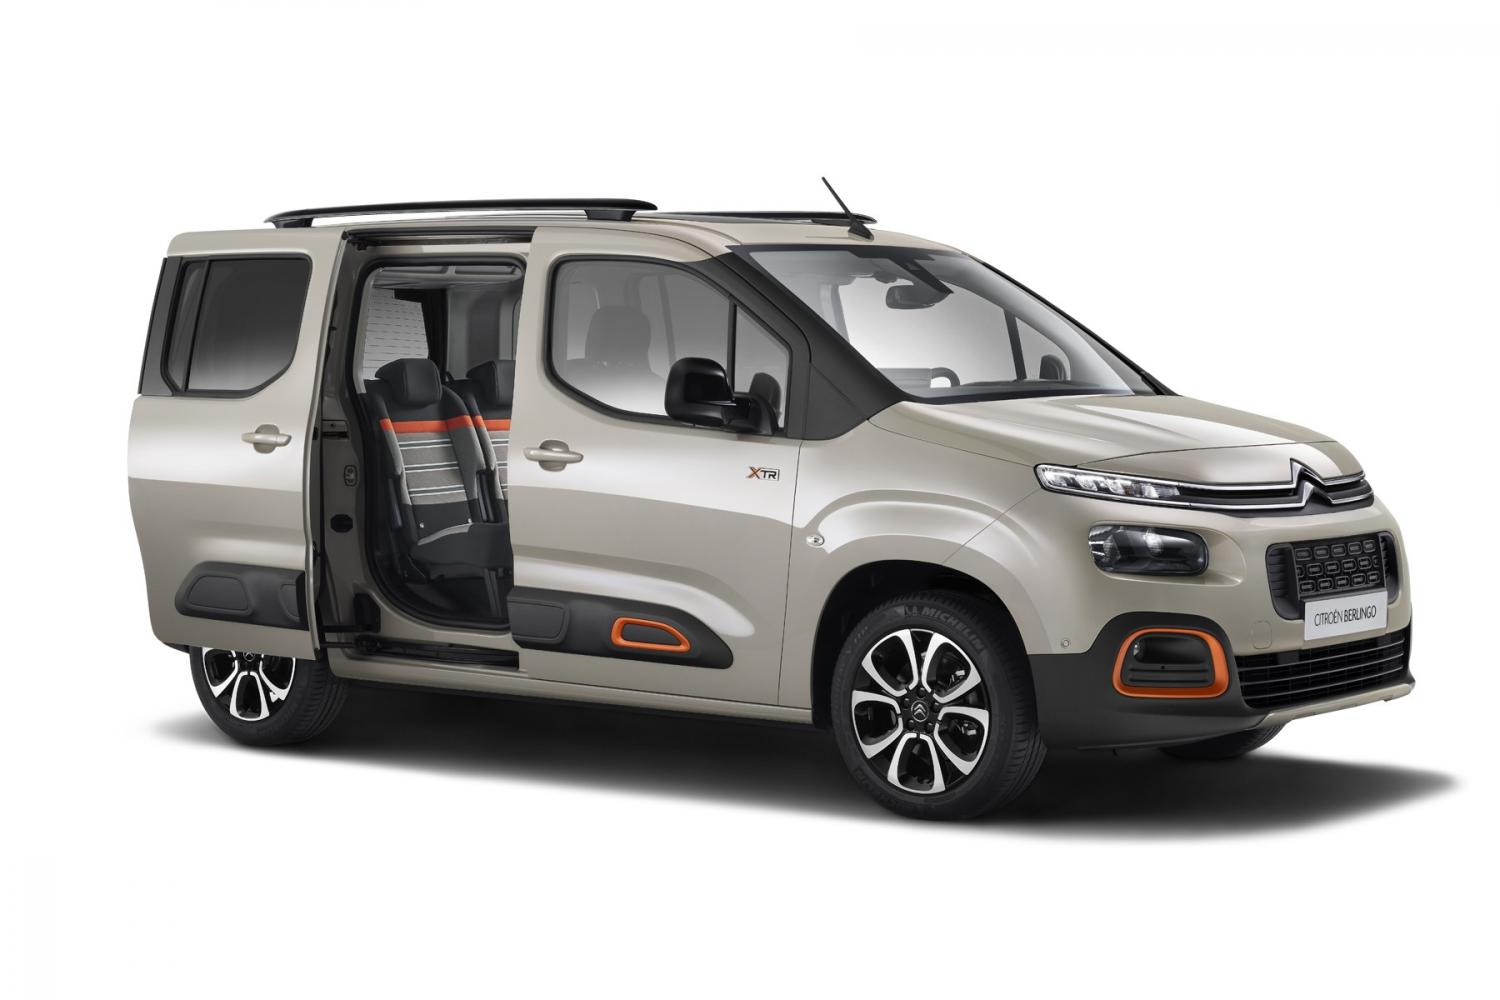 Citroen Berlingo 7 places Automatique ou similaire